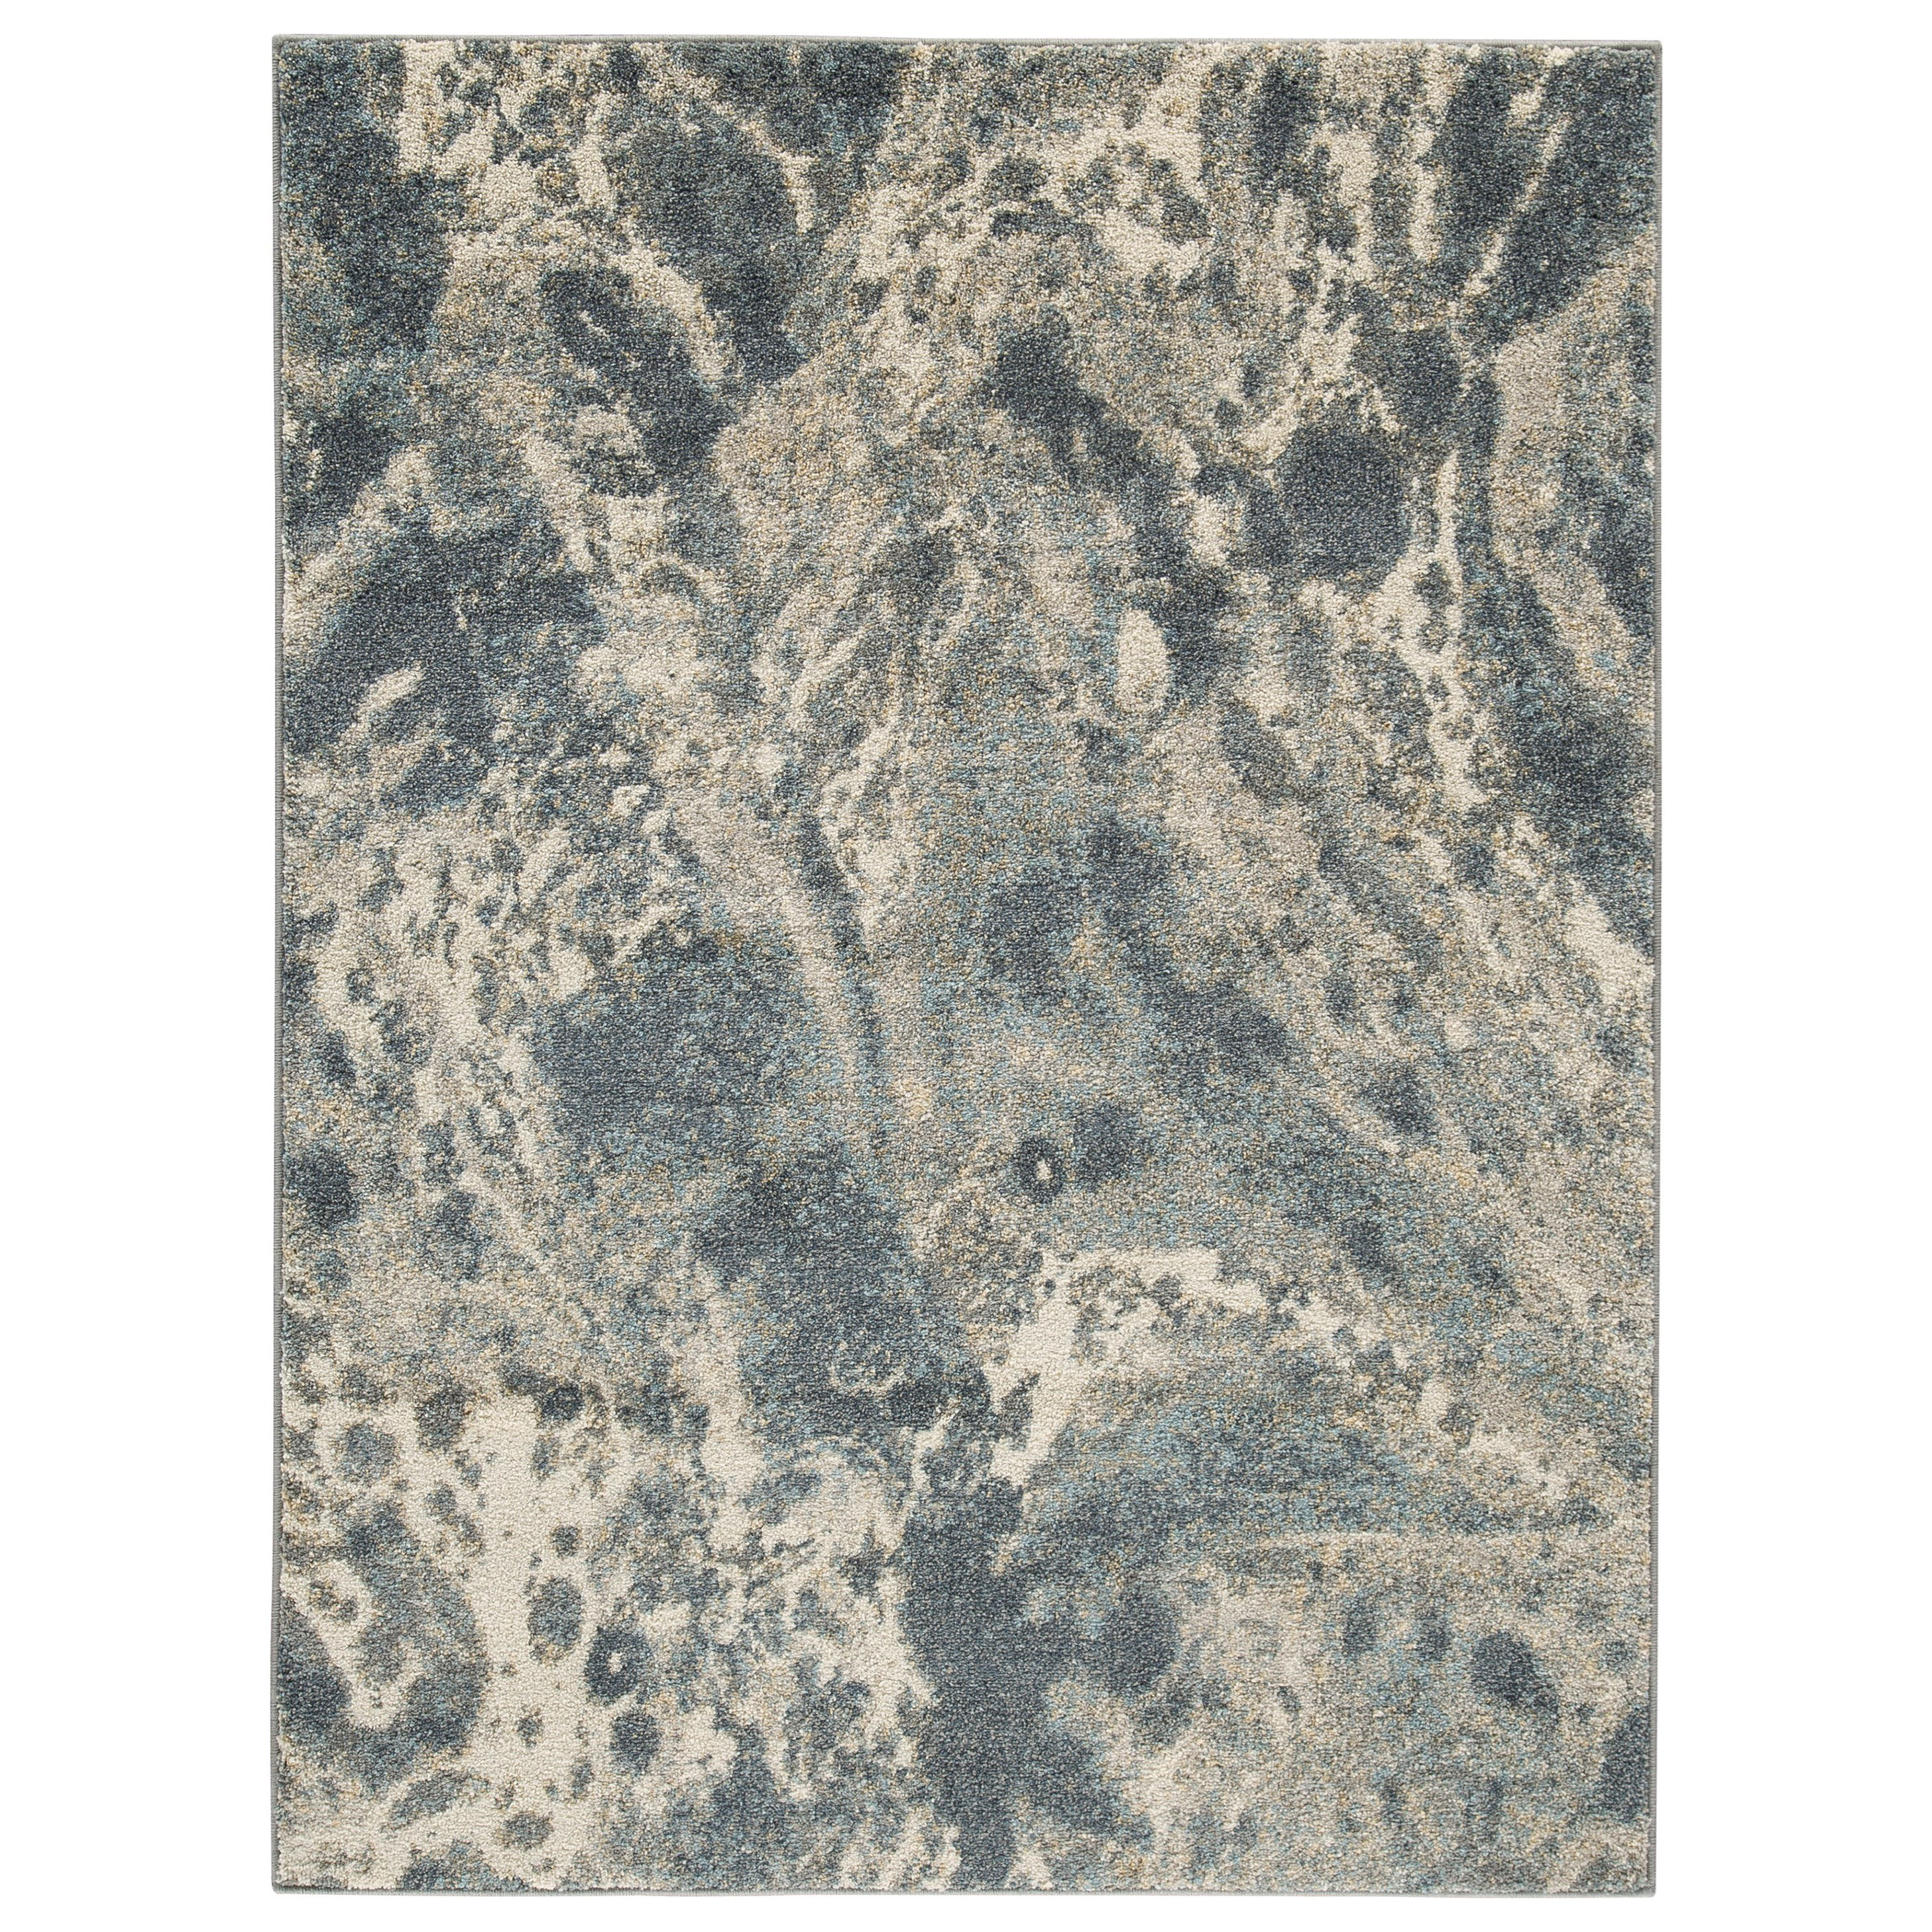 Contemporary Area Rugs Jyoti Blue Gray Tan Large Rug